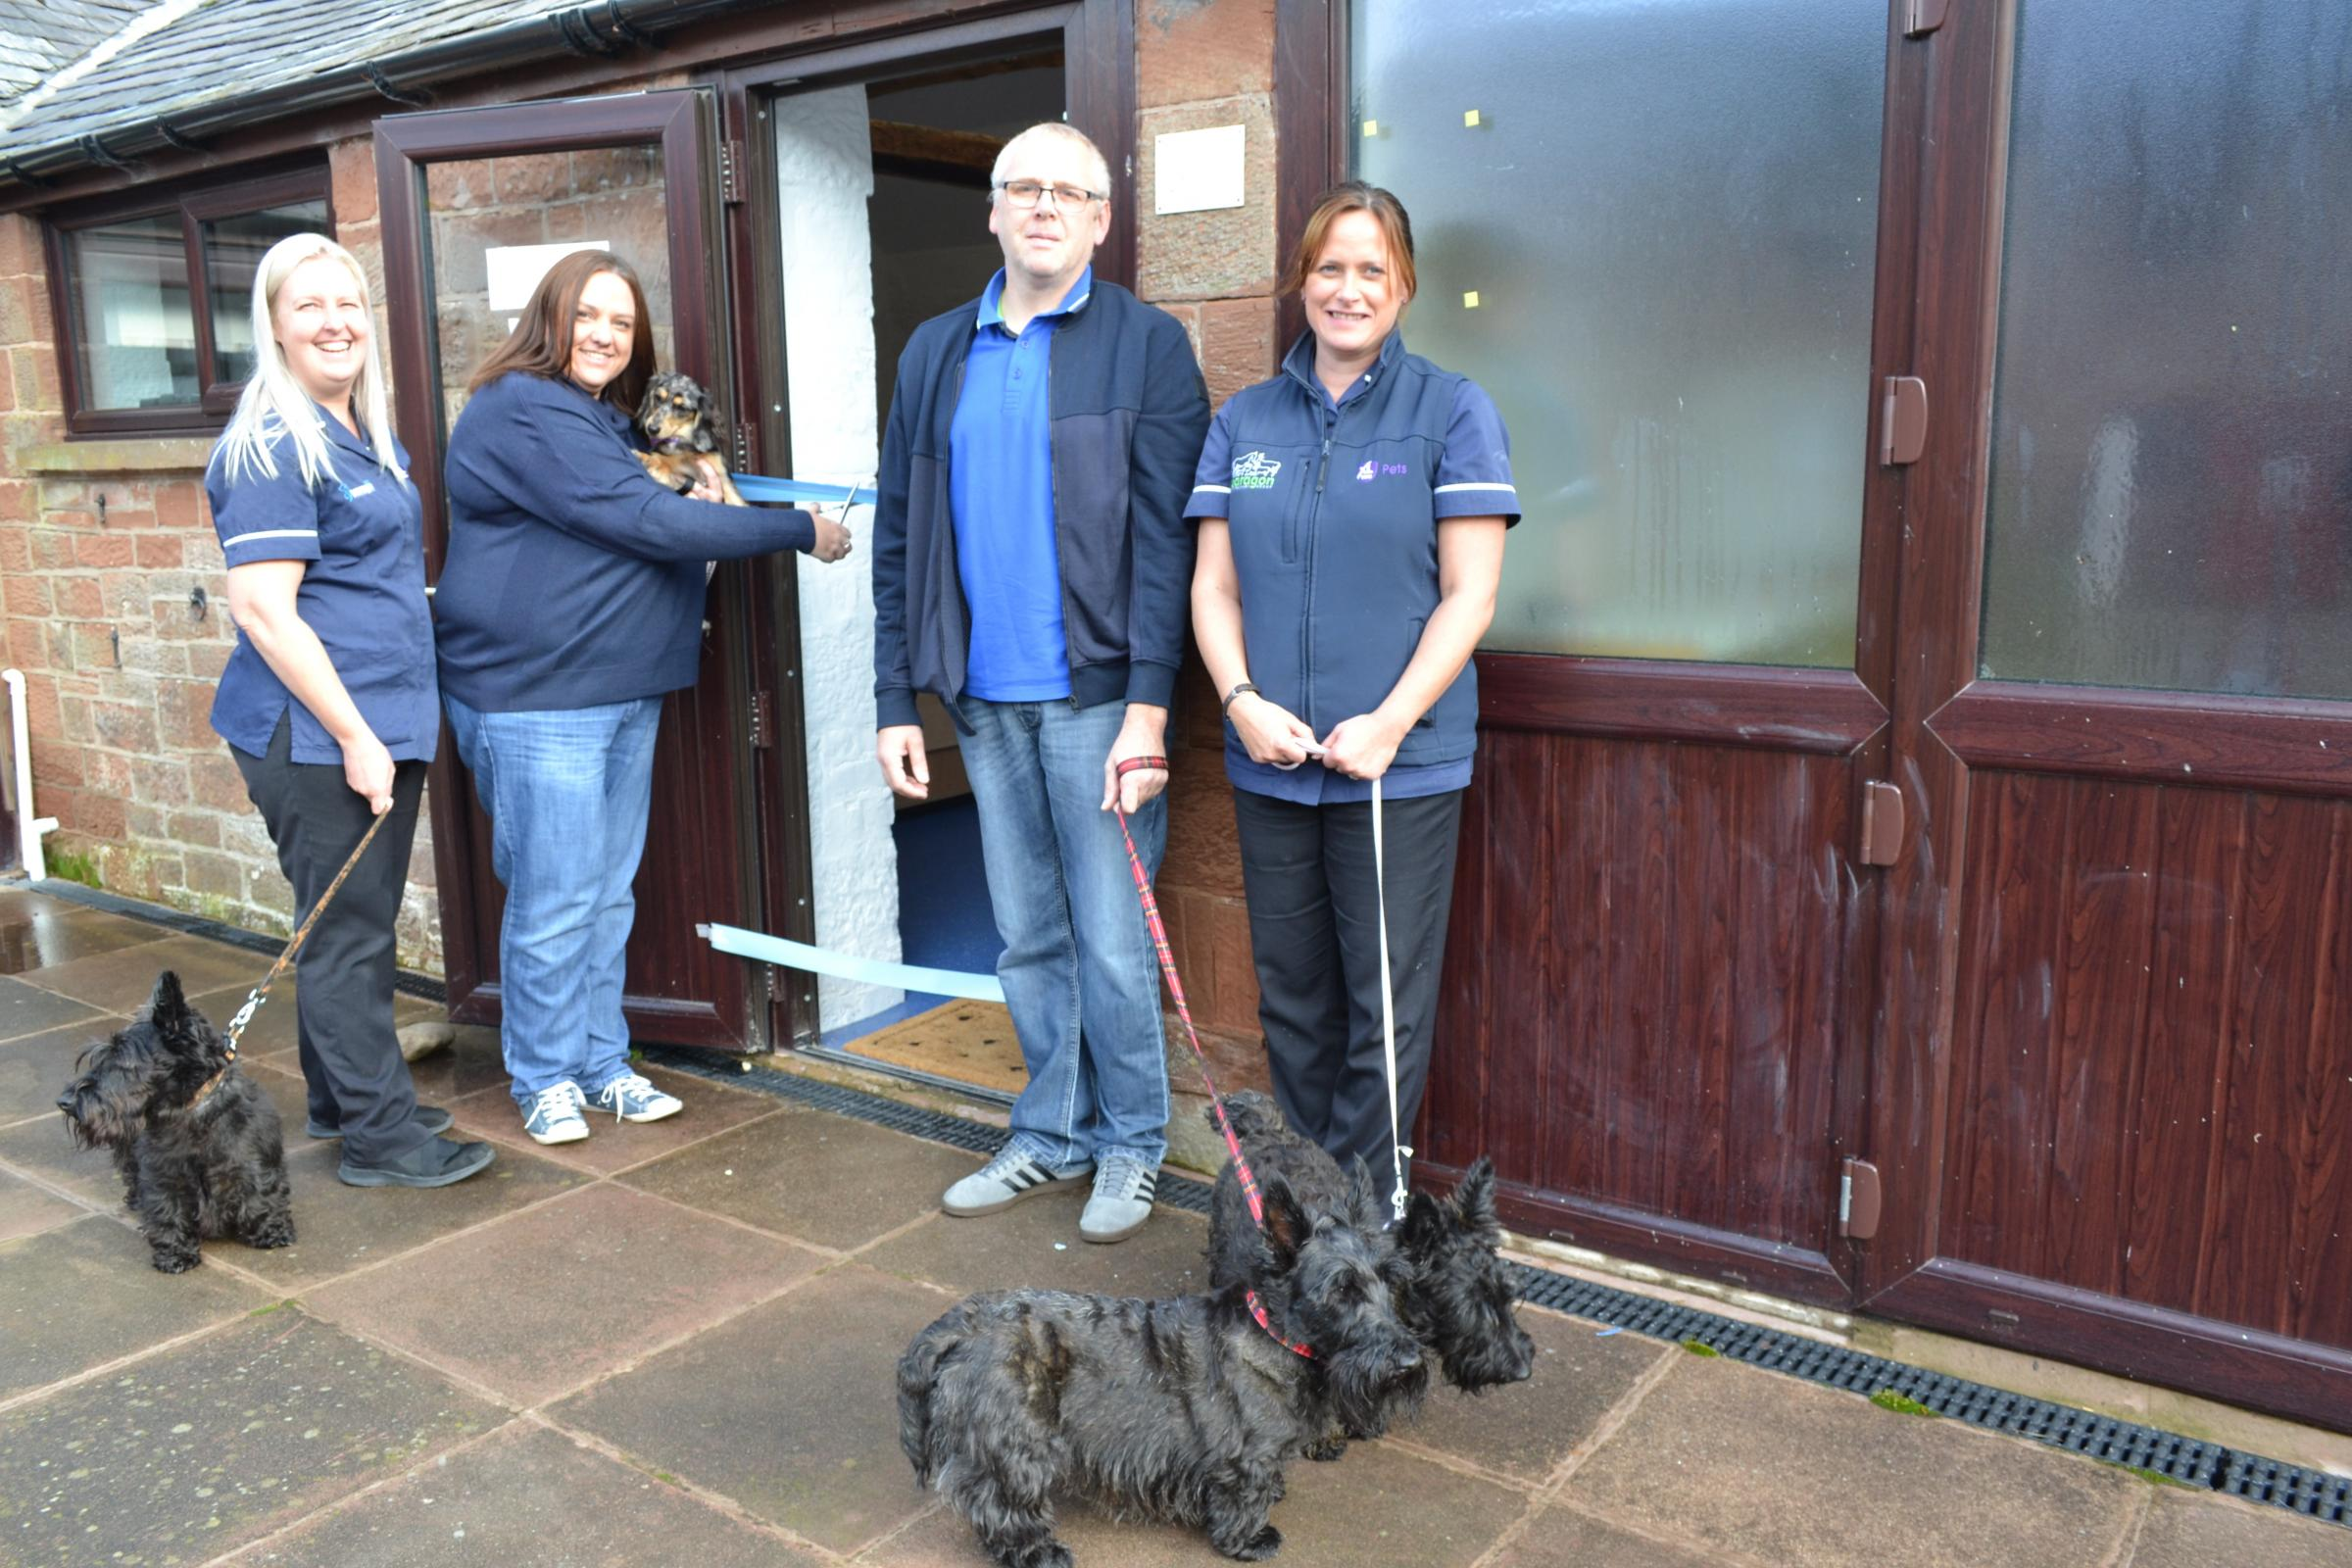 Wetheral's new vets' practice